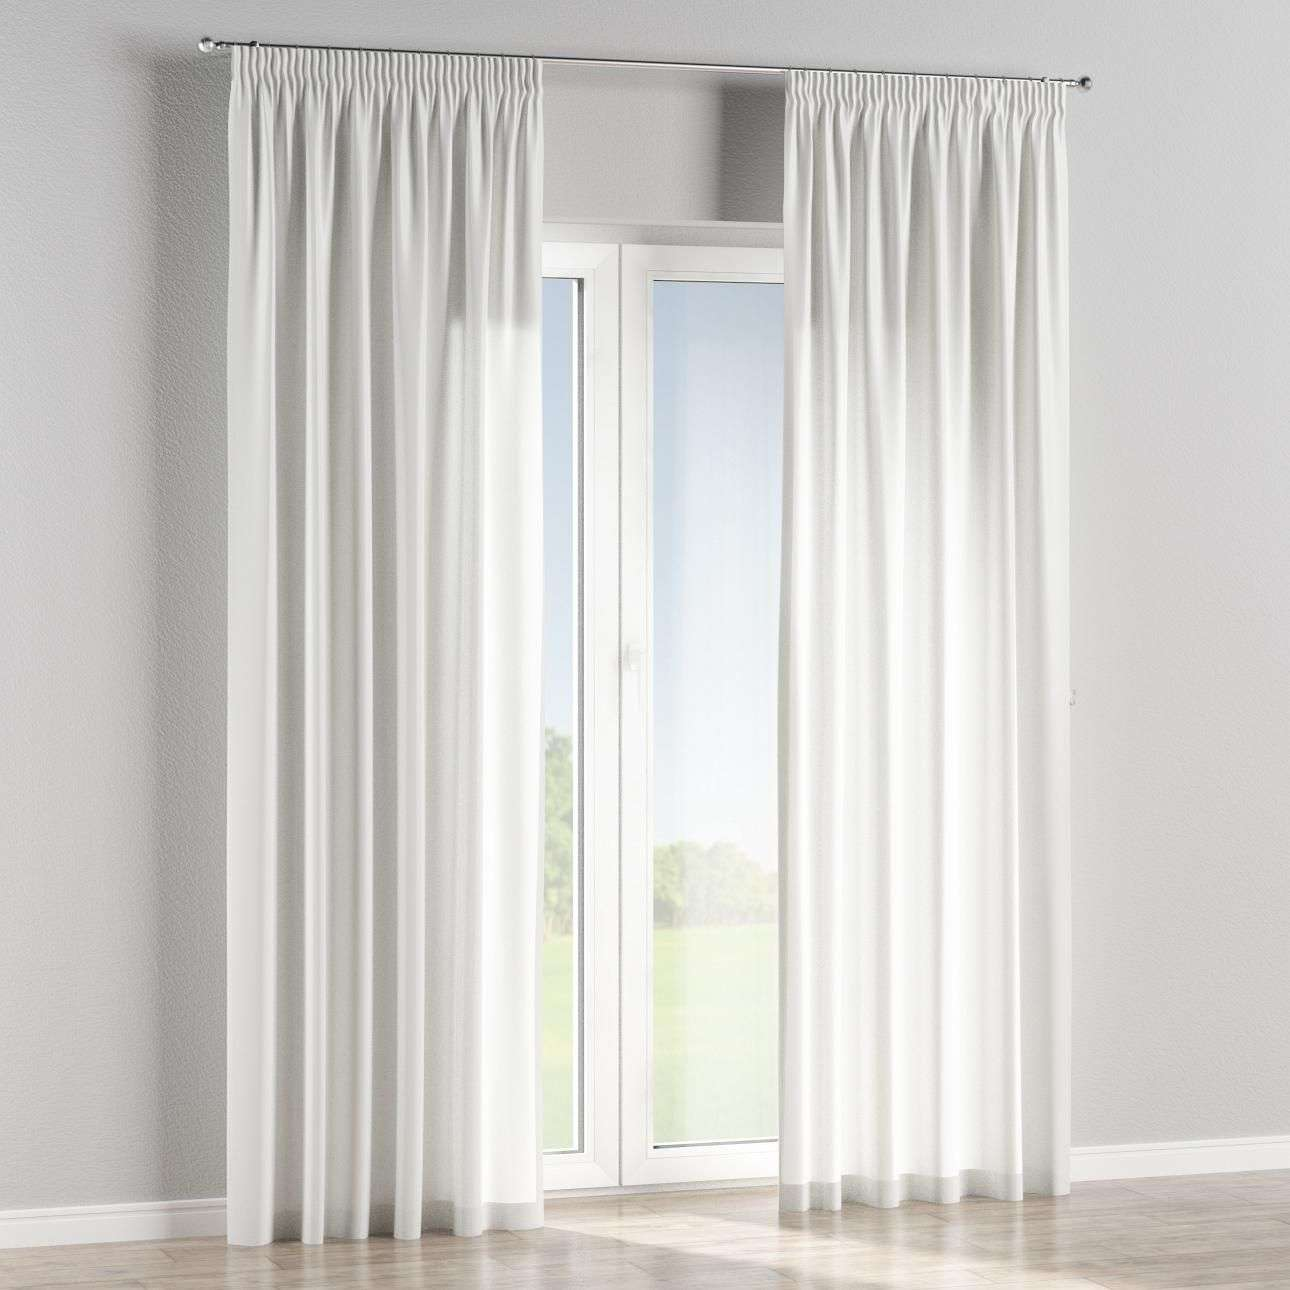 Pencil pleat lined curtains in collection Ashley, fabric: 137-46